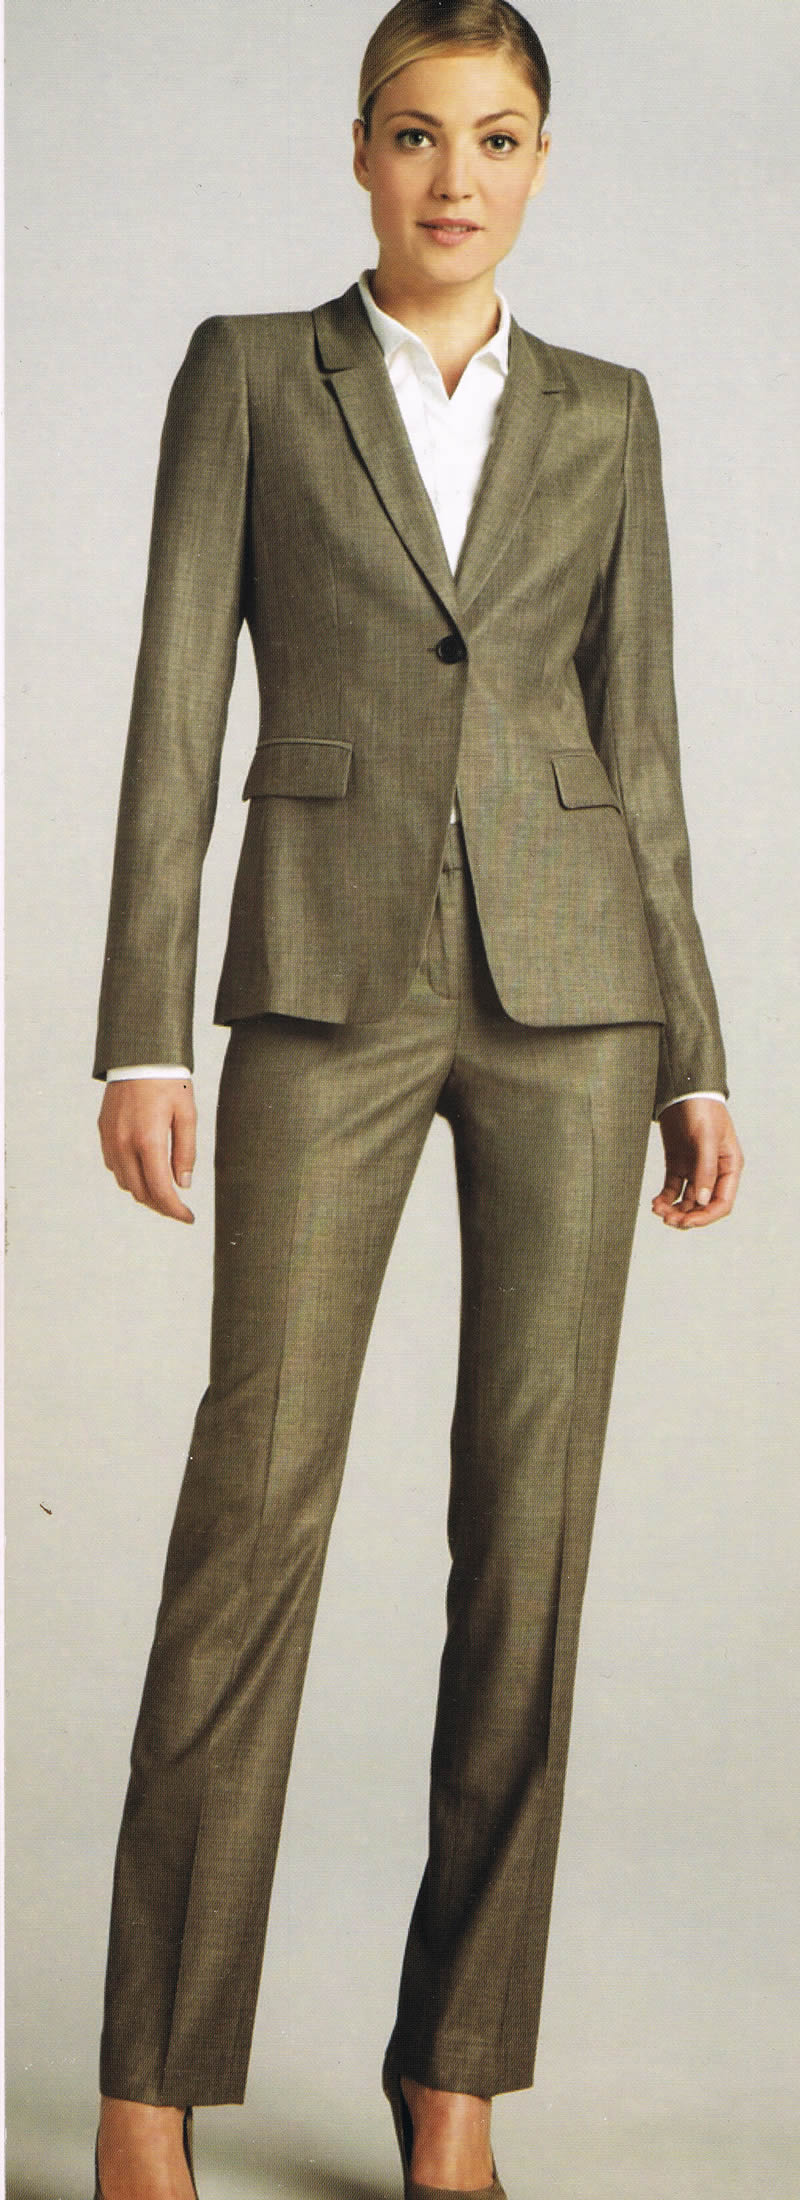 Suits with Pants